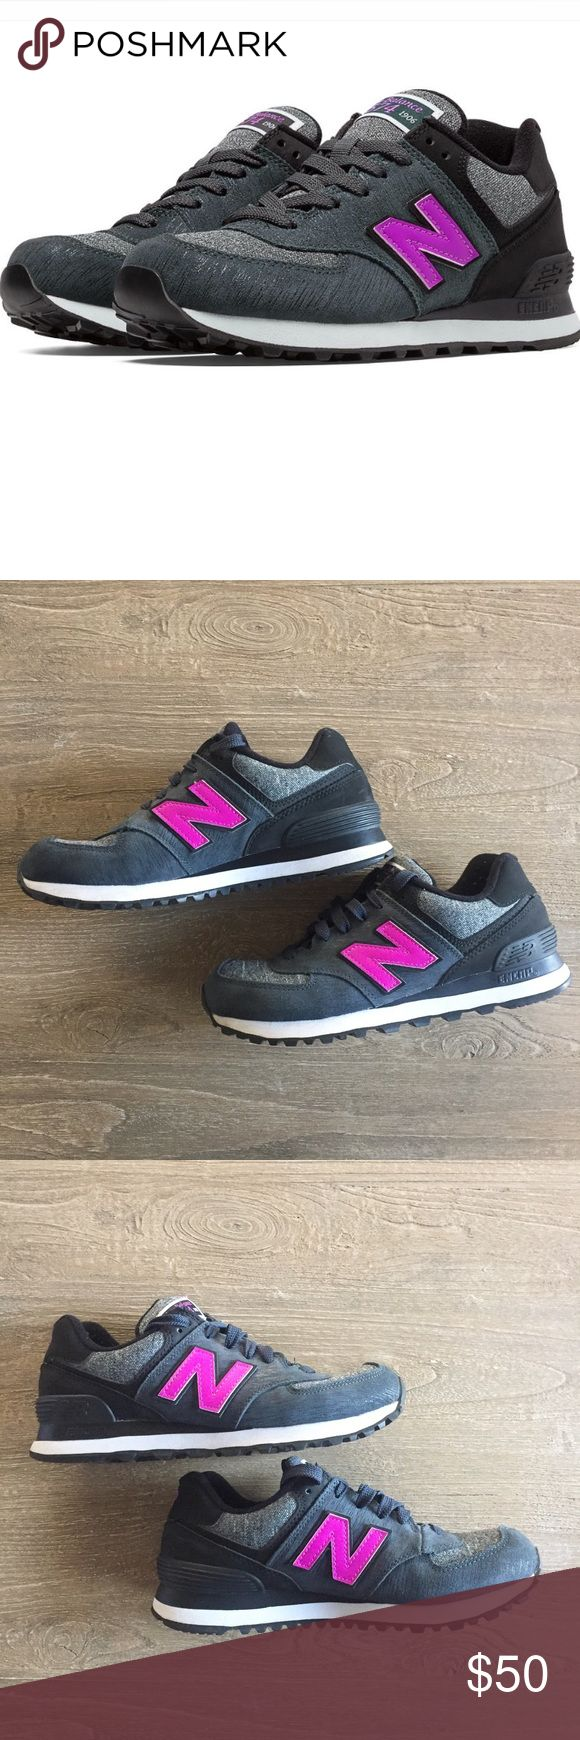 "New Balance 574 Gray/Black/Fuchsia Sneakers The cool iconic sneaker from New Balance, updated in a new colorway as part of the Sweatshirt collection. Gray and dark gray shoe with black accents and fuchsia graphics. Gently worn, some pilling around the interior heels. Runs true to size. Bundle and save 15%! Just click ""Add to Bundle"" on ANY two or more of my listings, and a 15% discount will automatically be applied--plus you pay only one shipping fee! New Balance Shoes Athletic Shoes"